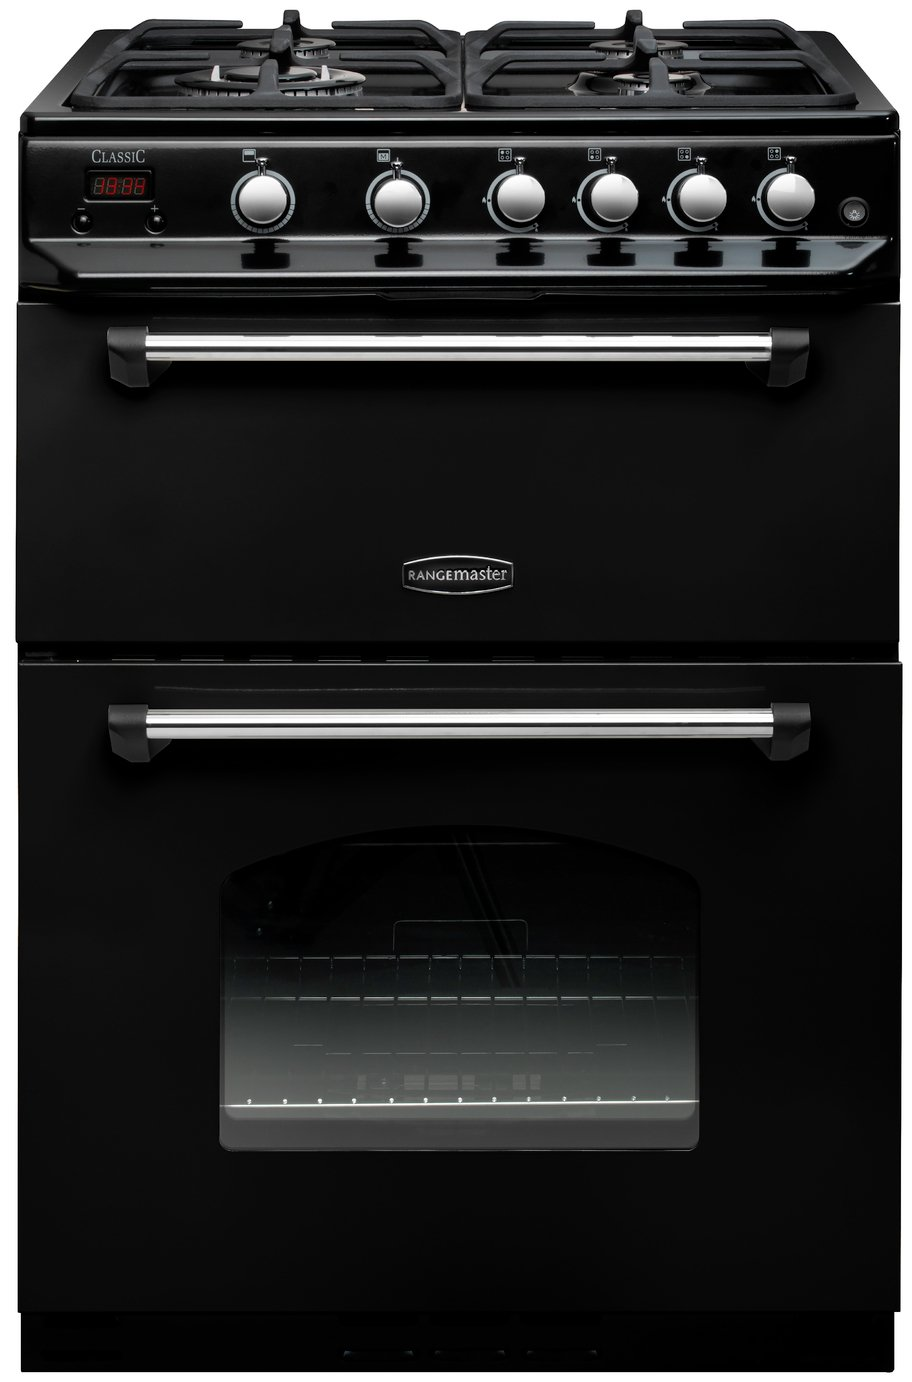 Rangemaster CLAS60NGFBL/C Classic Gas Cooker - Black